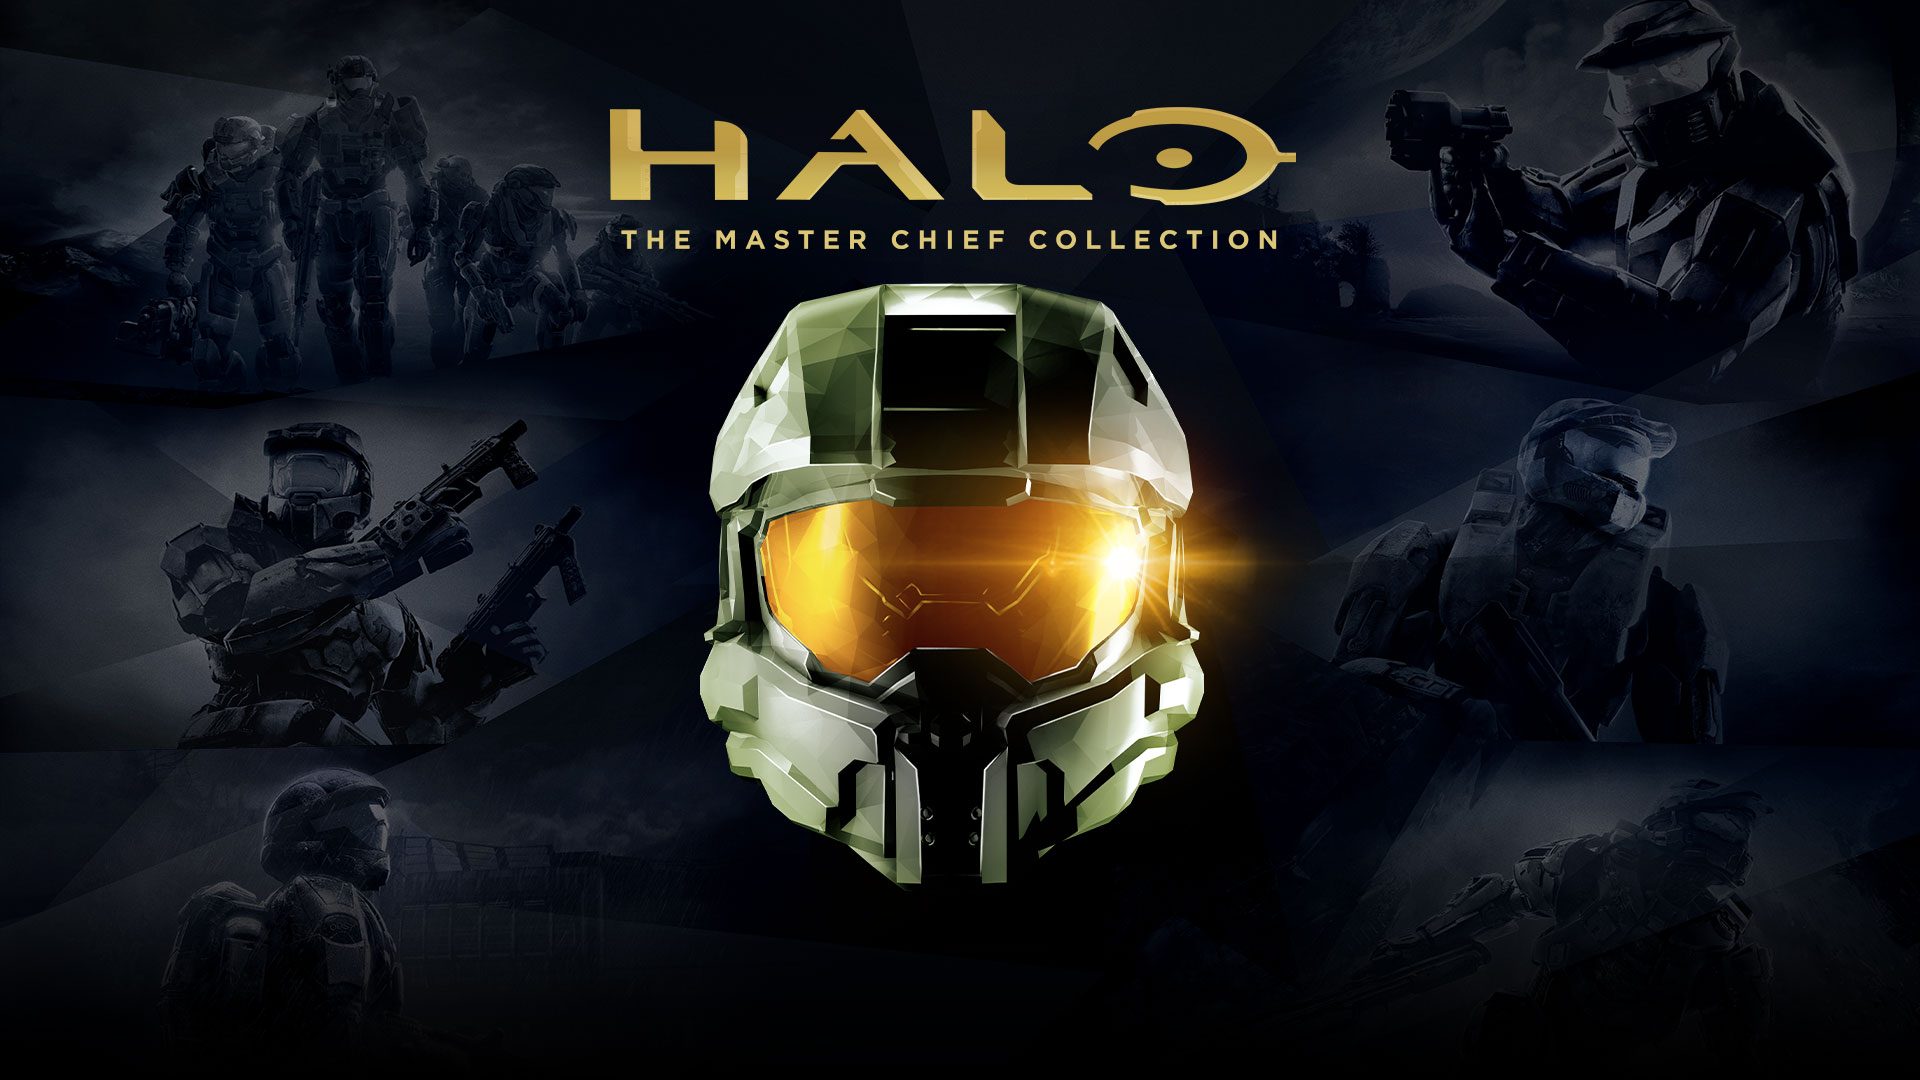 Front view of Master Chief's helmet with prior Halo game art in the background